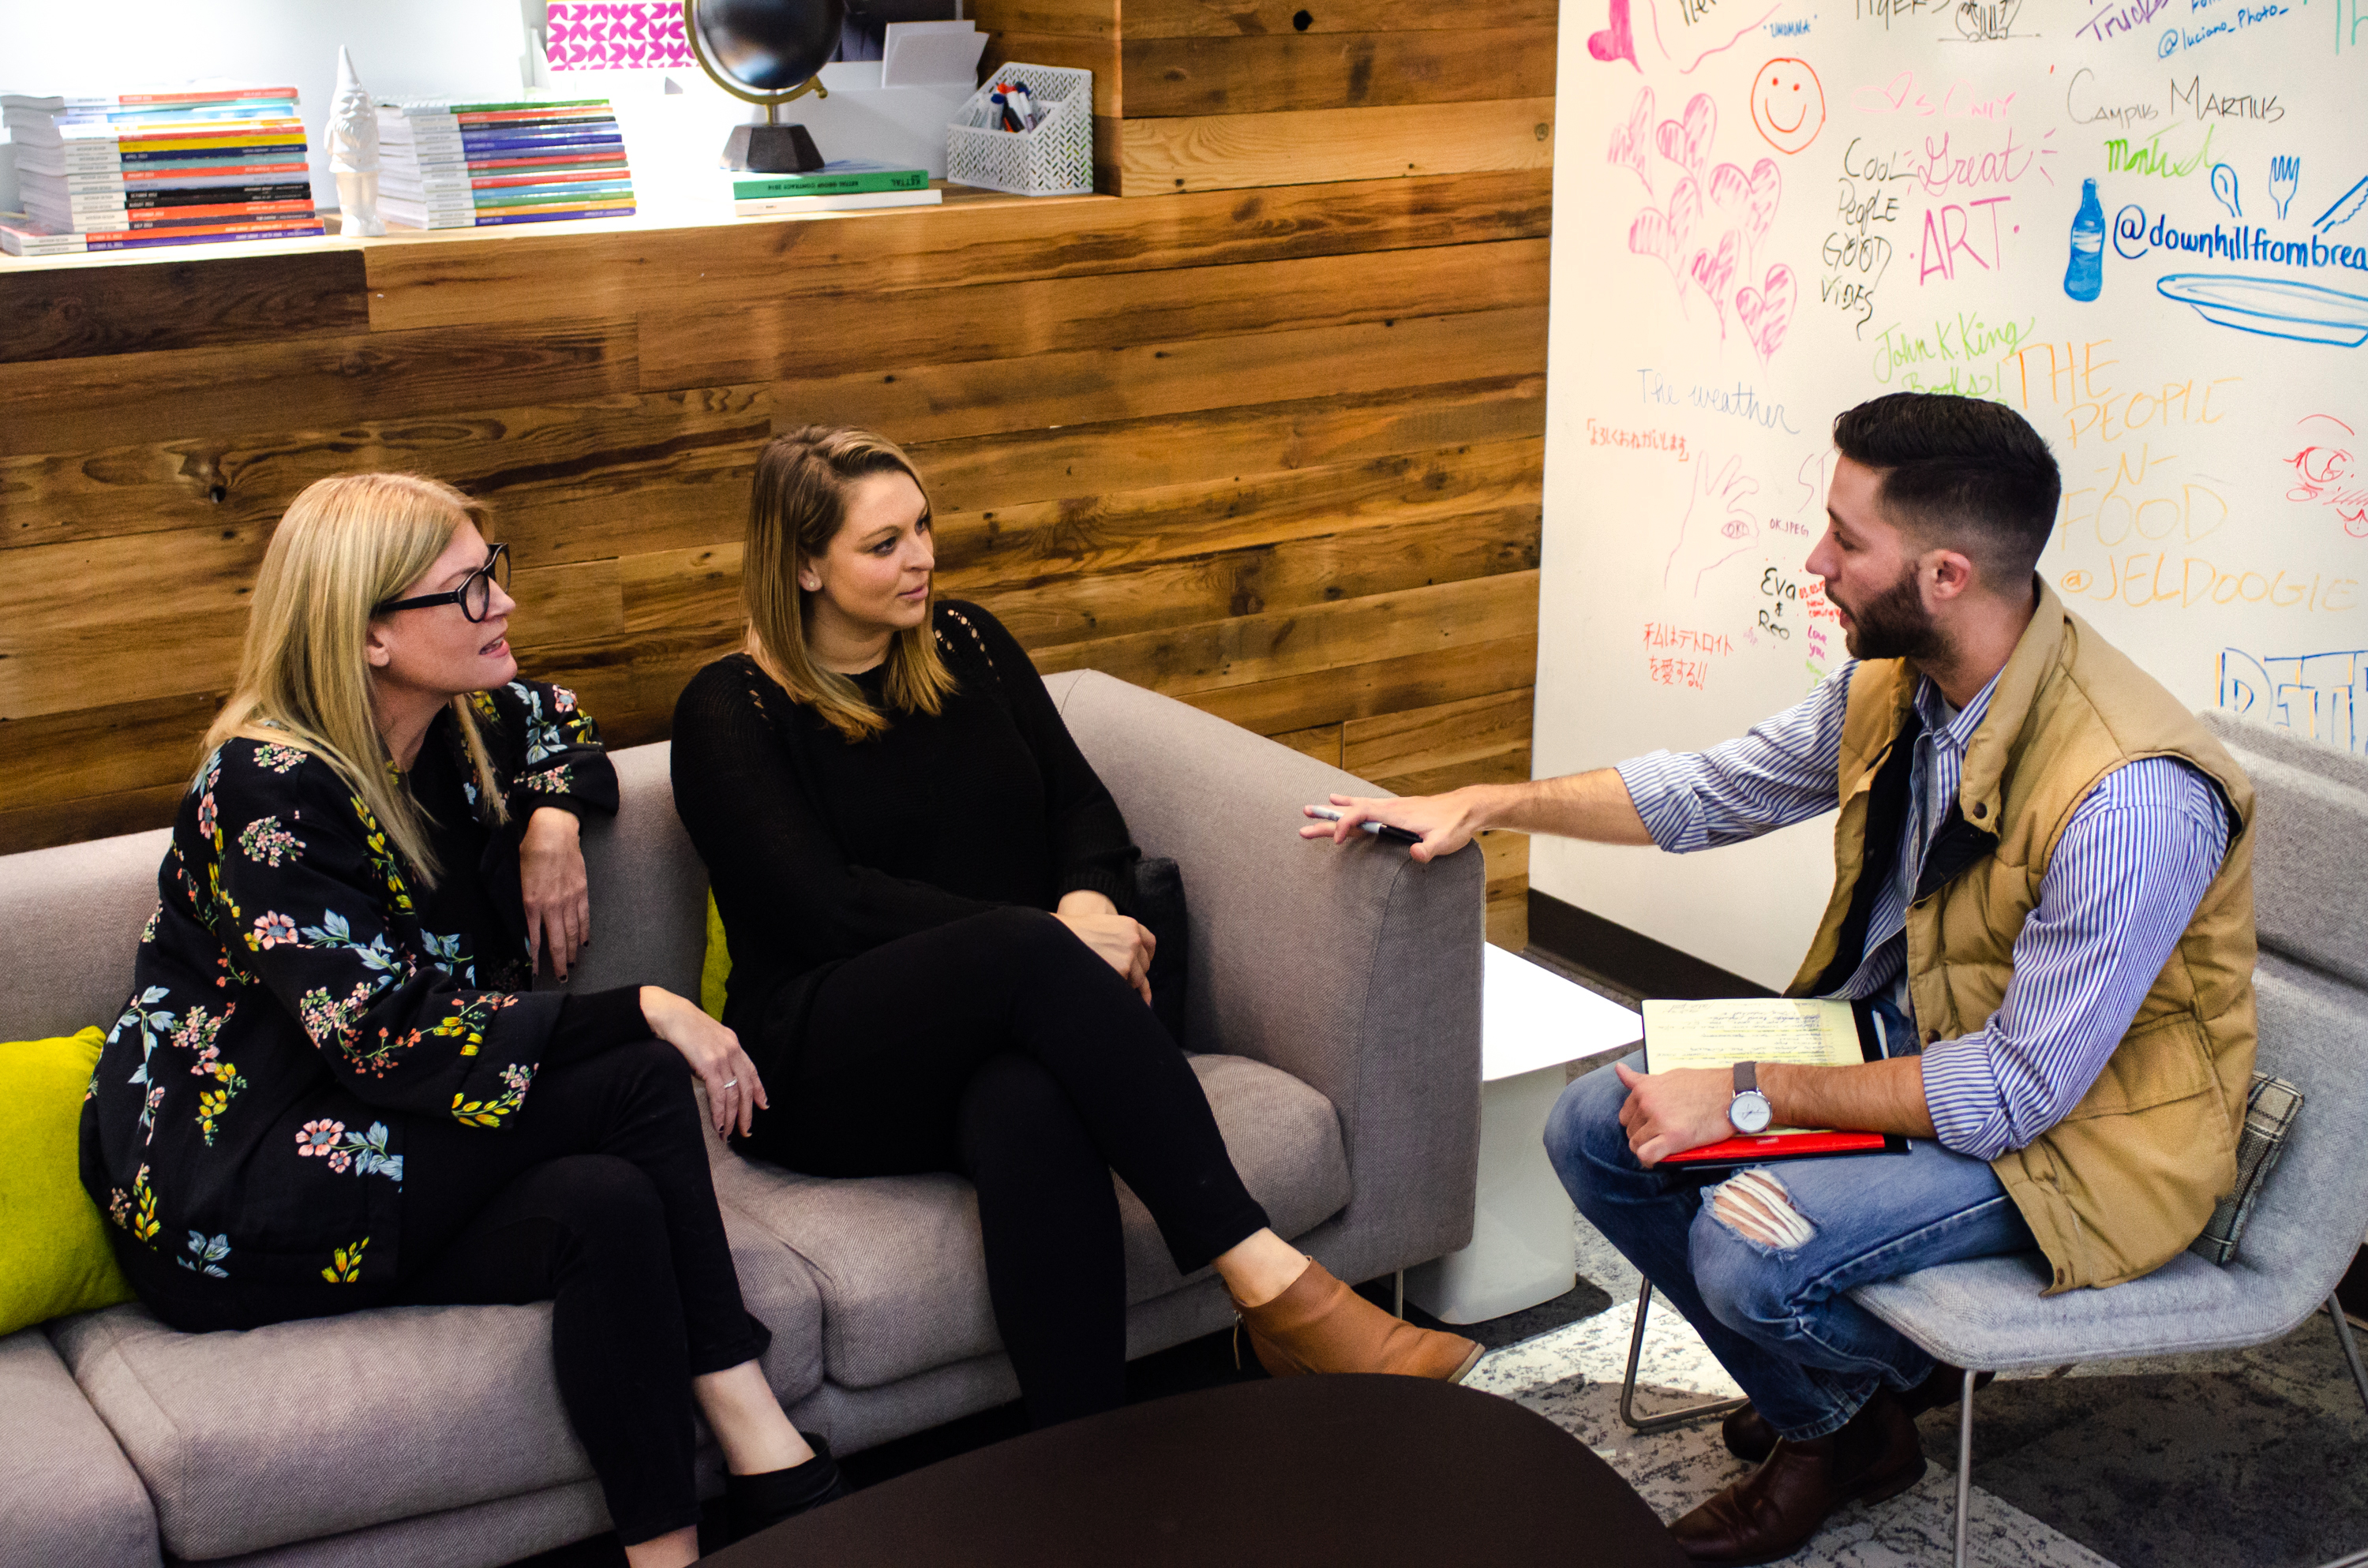 furniture DCTC'S CHRISTOPHER STEFANI INTERVIEWS MEREDITH VYN AND ERICA KIMBER. PHOTO JC